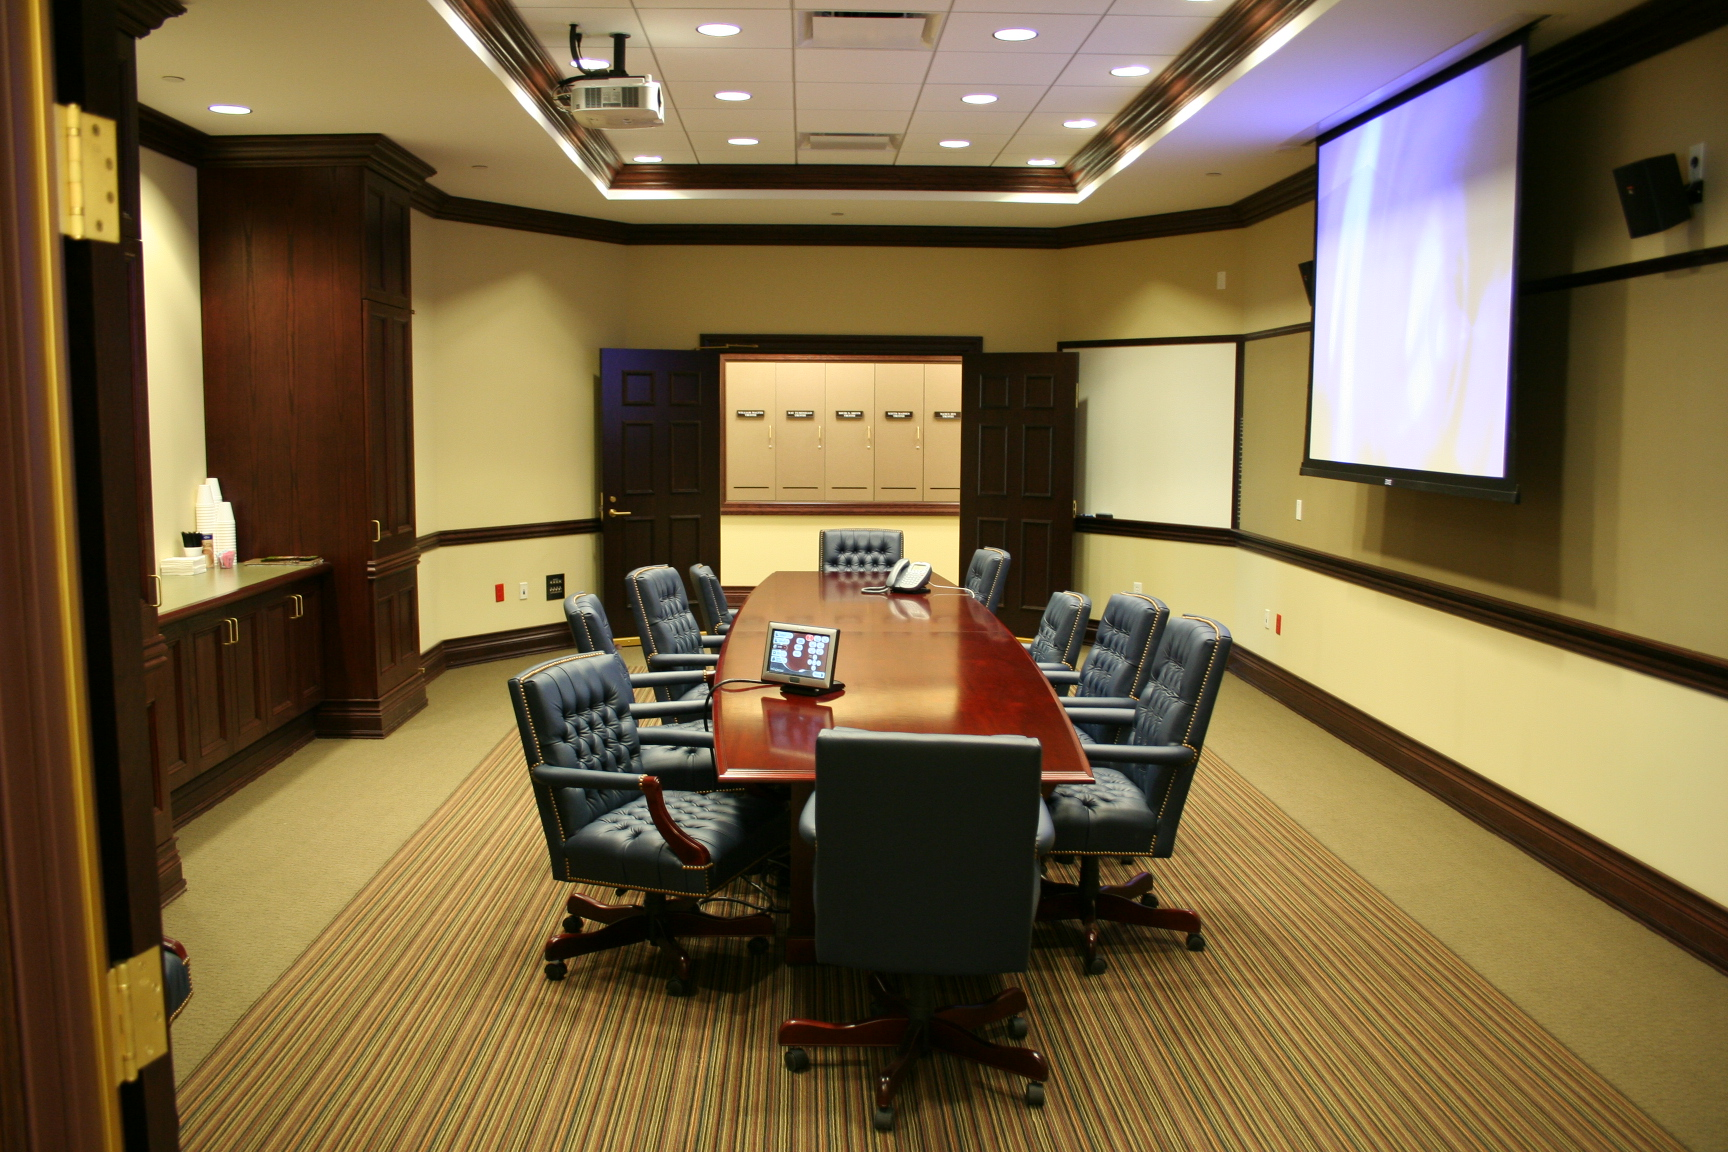 office conference room. Office Rooms. Rooms Inside A Conference Room E